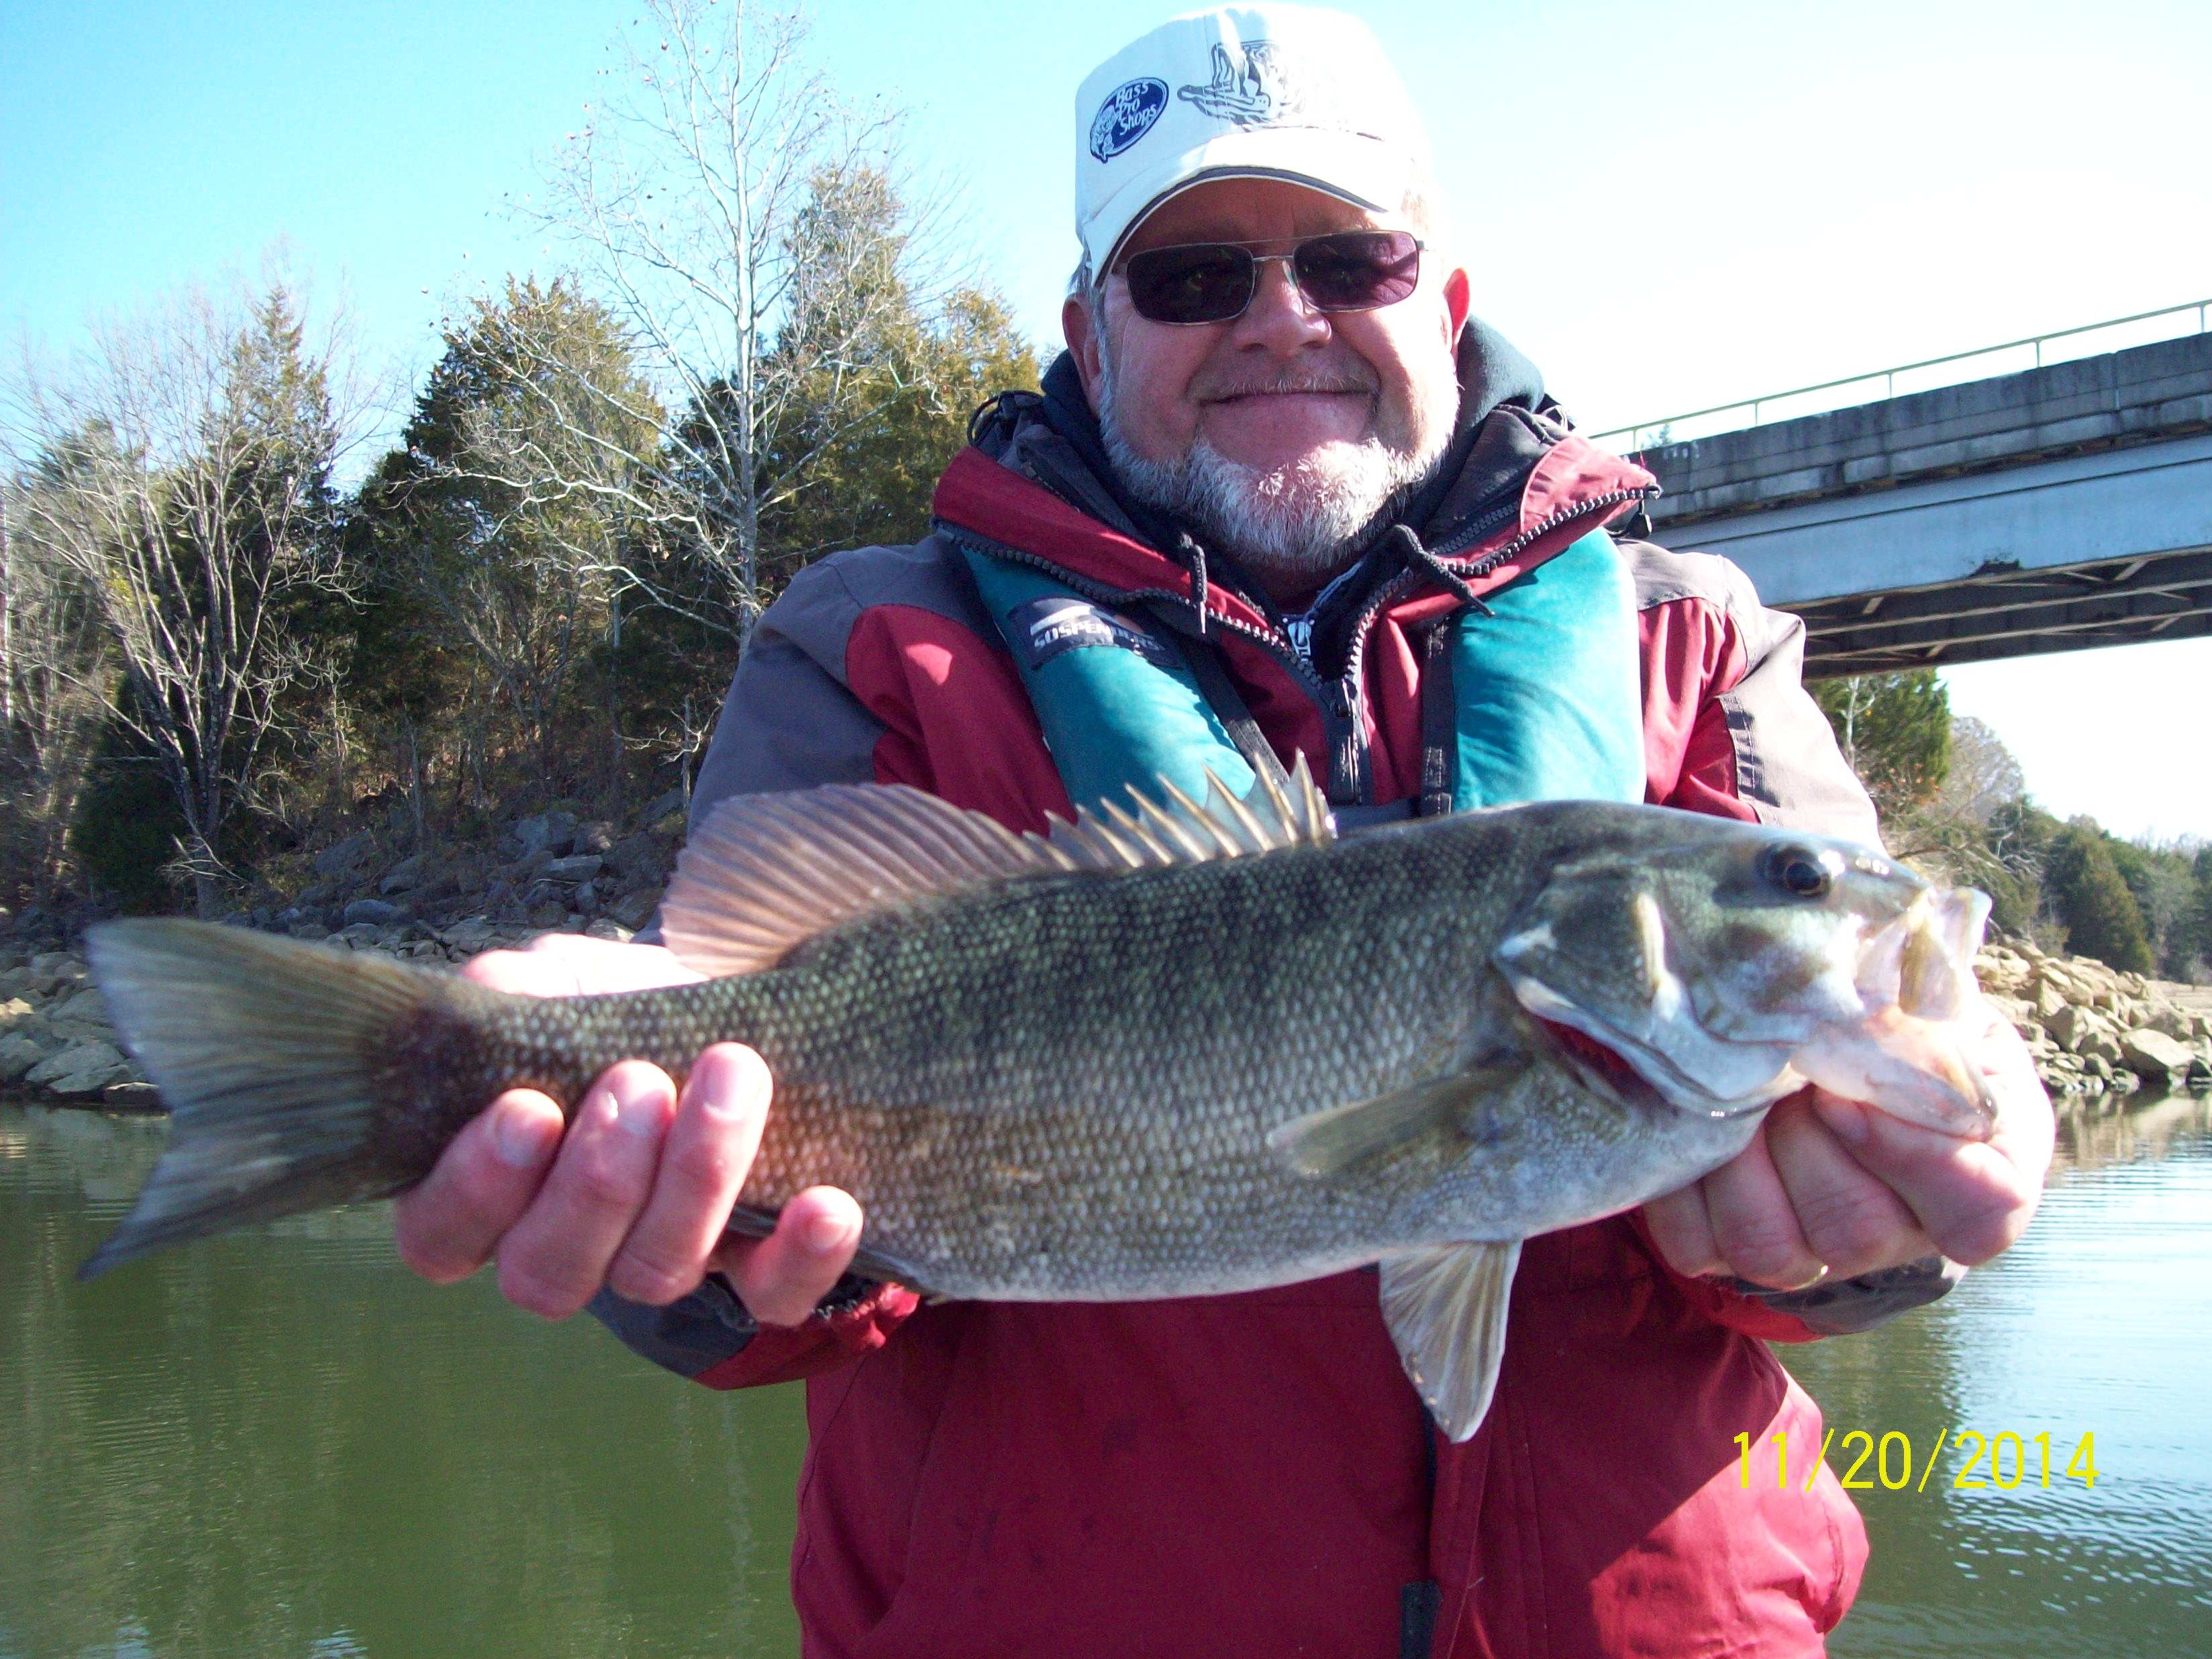 Tim s ford live bait 11 21 2014 tennessee bass guides for Bass fishing with live bait